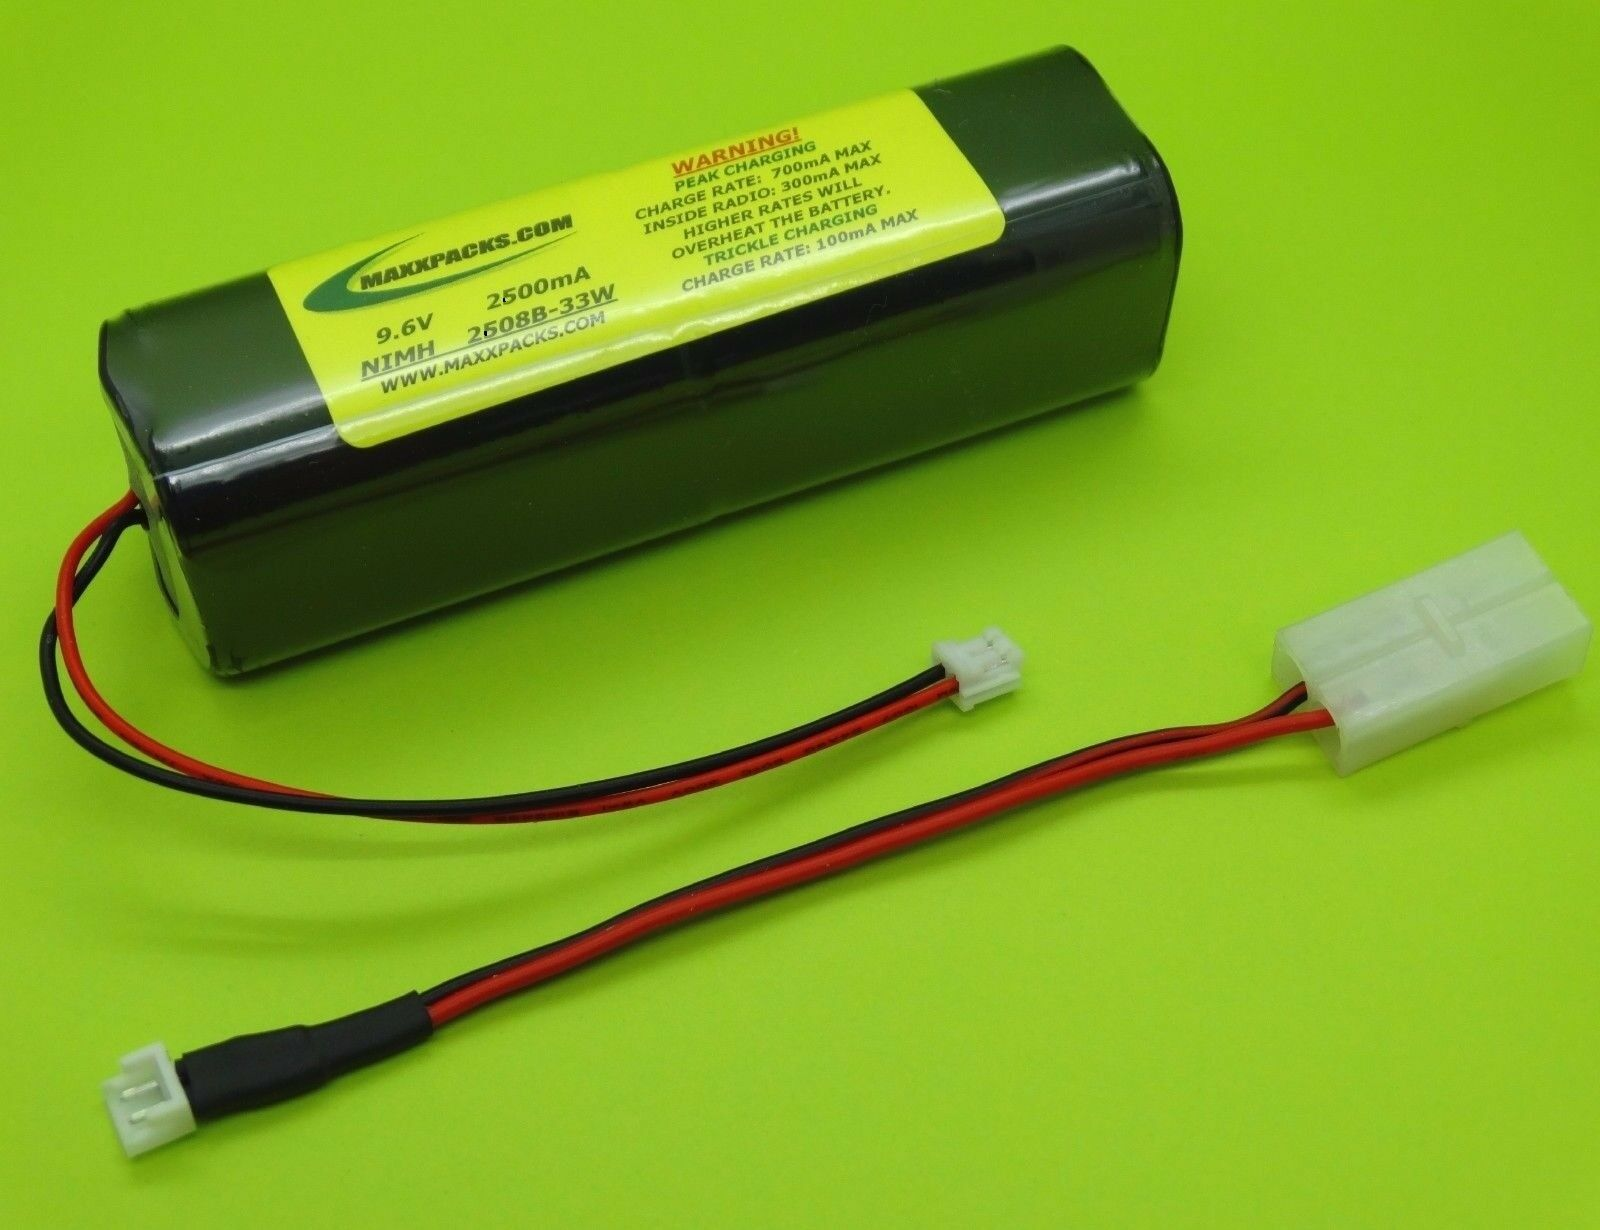 TWO 2600mA Tx BATTERIES 4 SPEKTRUM XP6102 XP8103A 9303   2608B-33W   MADE IN USA